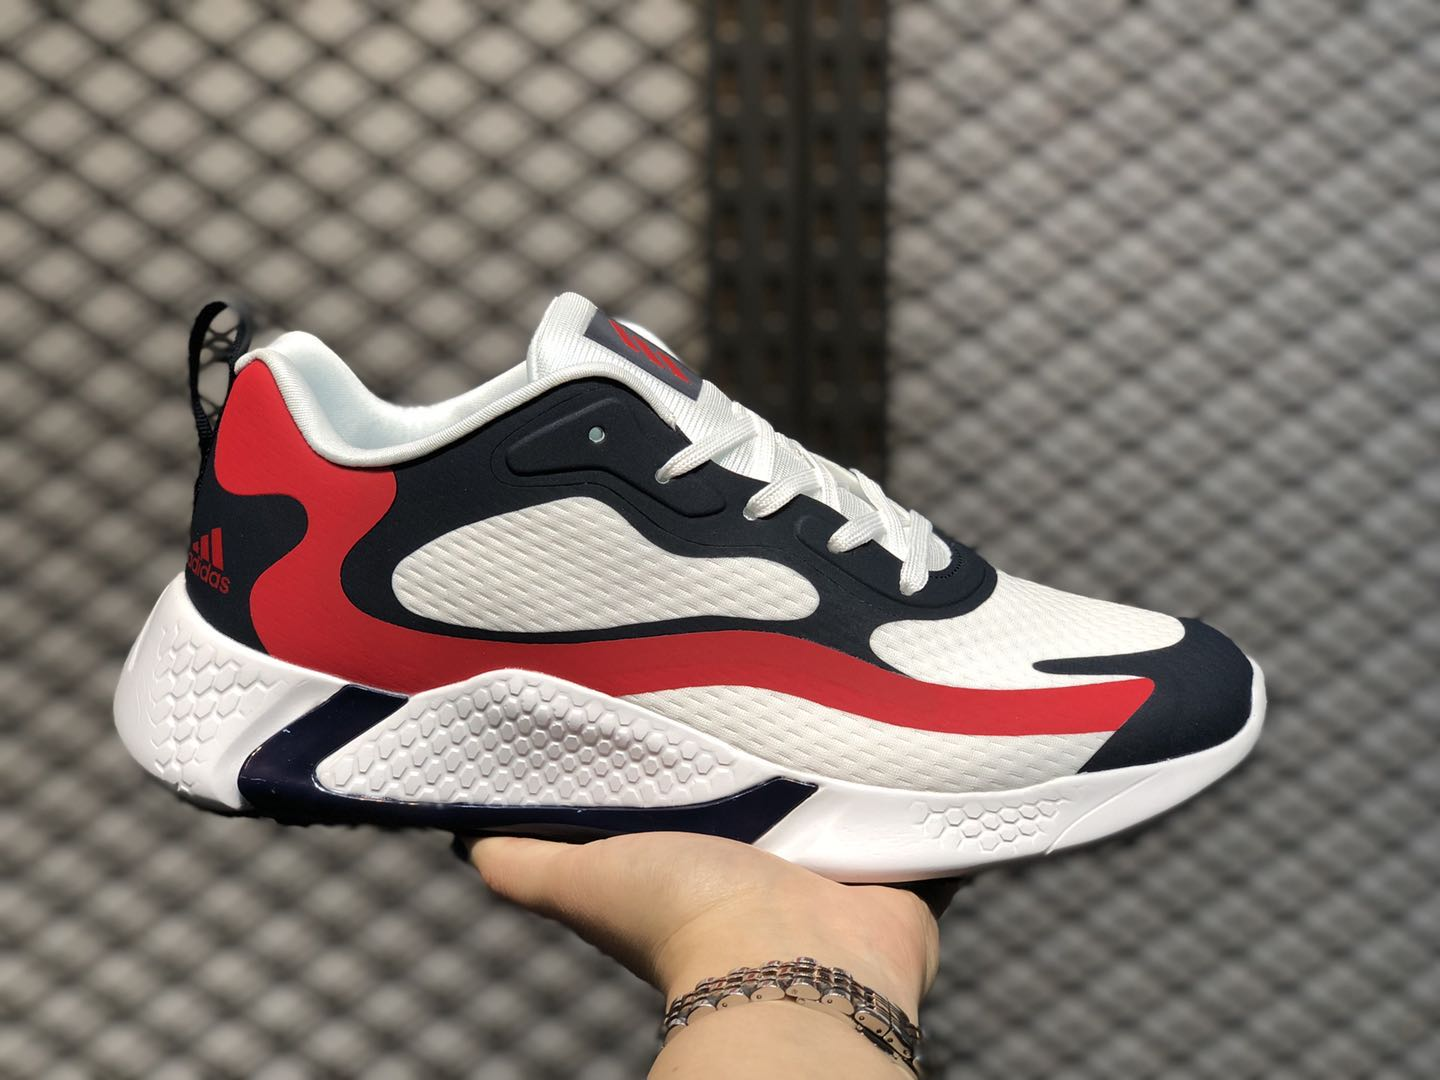 Adidas Alphabounce Beyond M White/Navy-Bright-Red CG5573